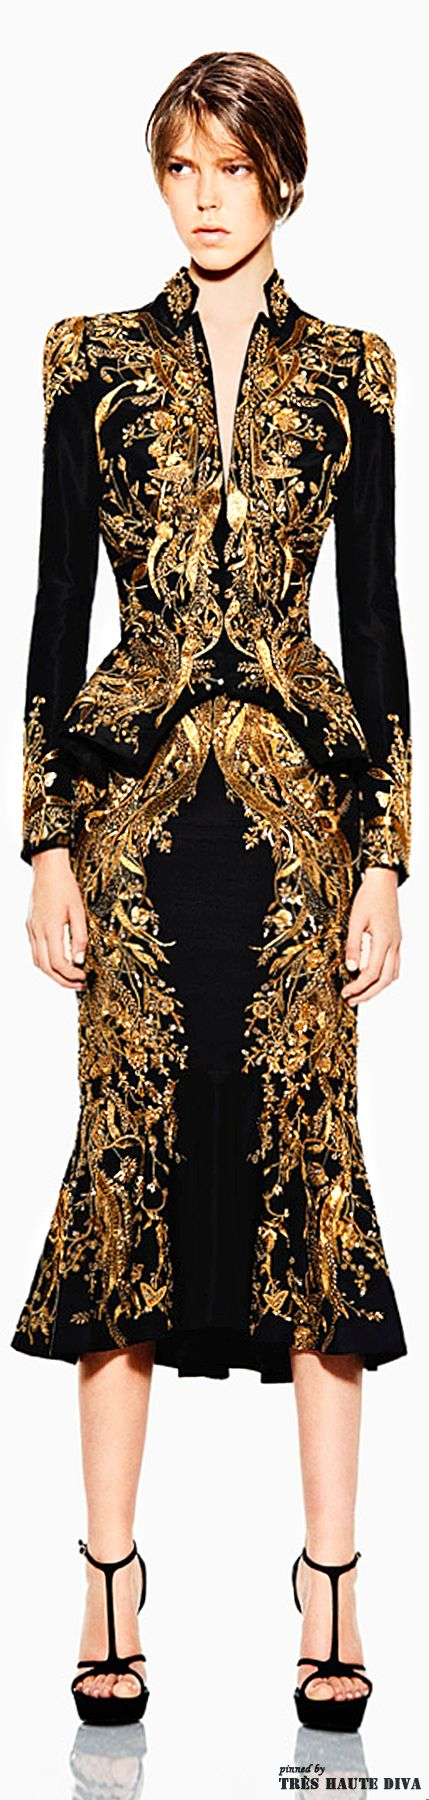 Alexander McQueen Resort | The House of Beccaria~